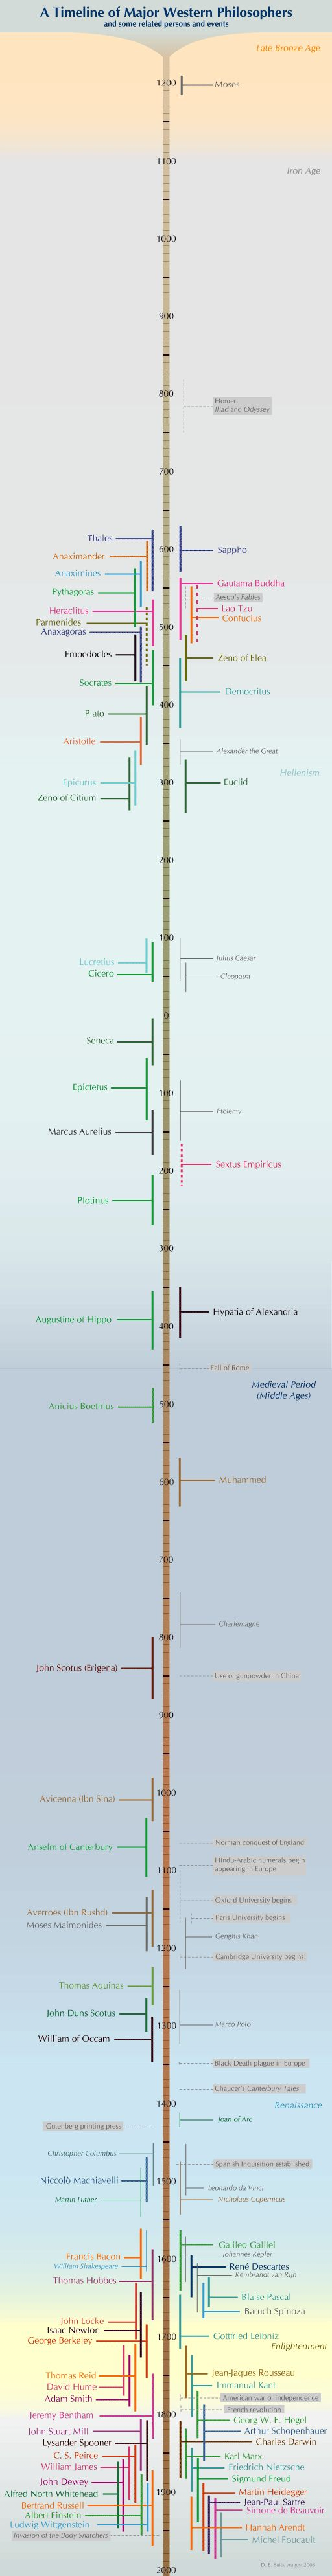 Timeline of western phylosophers and some related historical personalities and events.